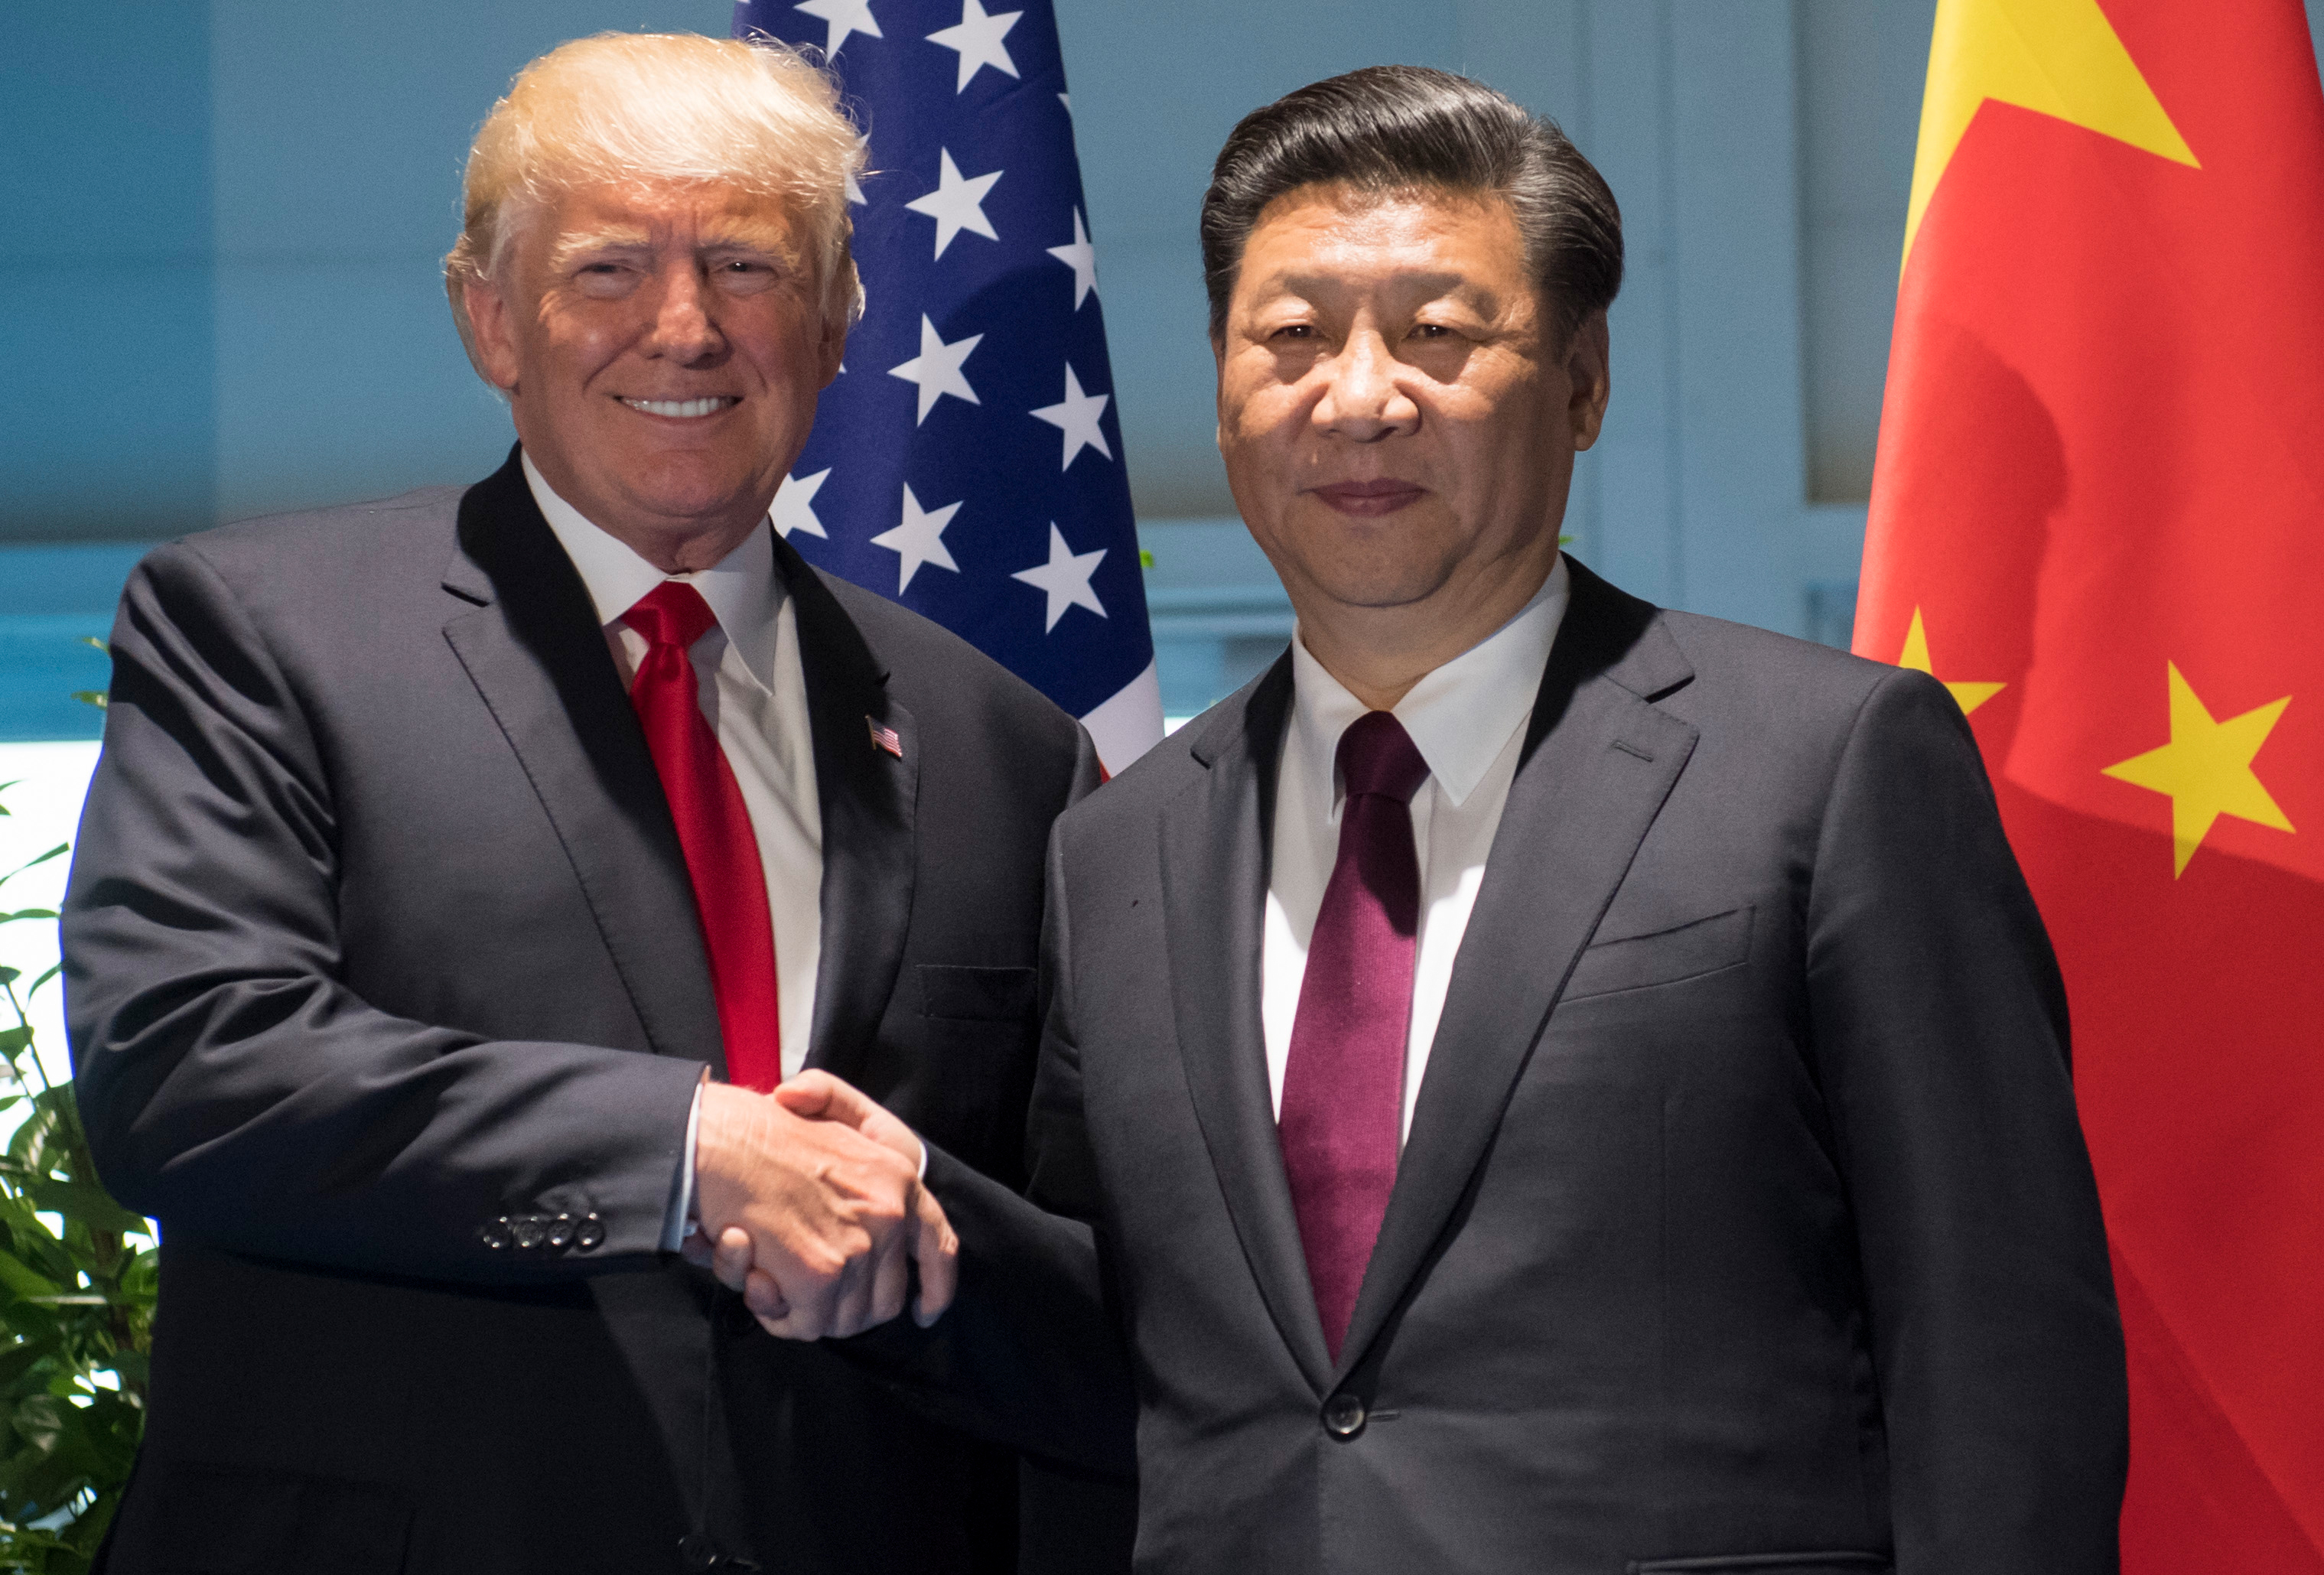 US President Donald Trump and Chinese President Xi Jinping shake hands prior to a meeting on the sidelines of the G20 Summit in Hamburg, Germany, July 8, 2017.